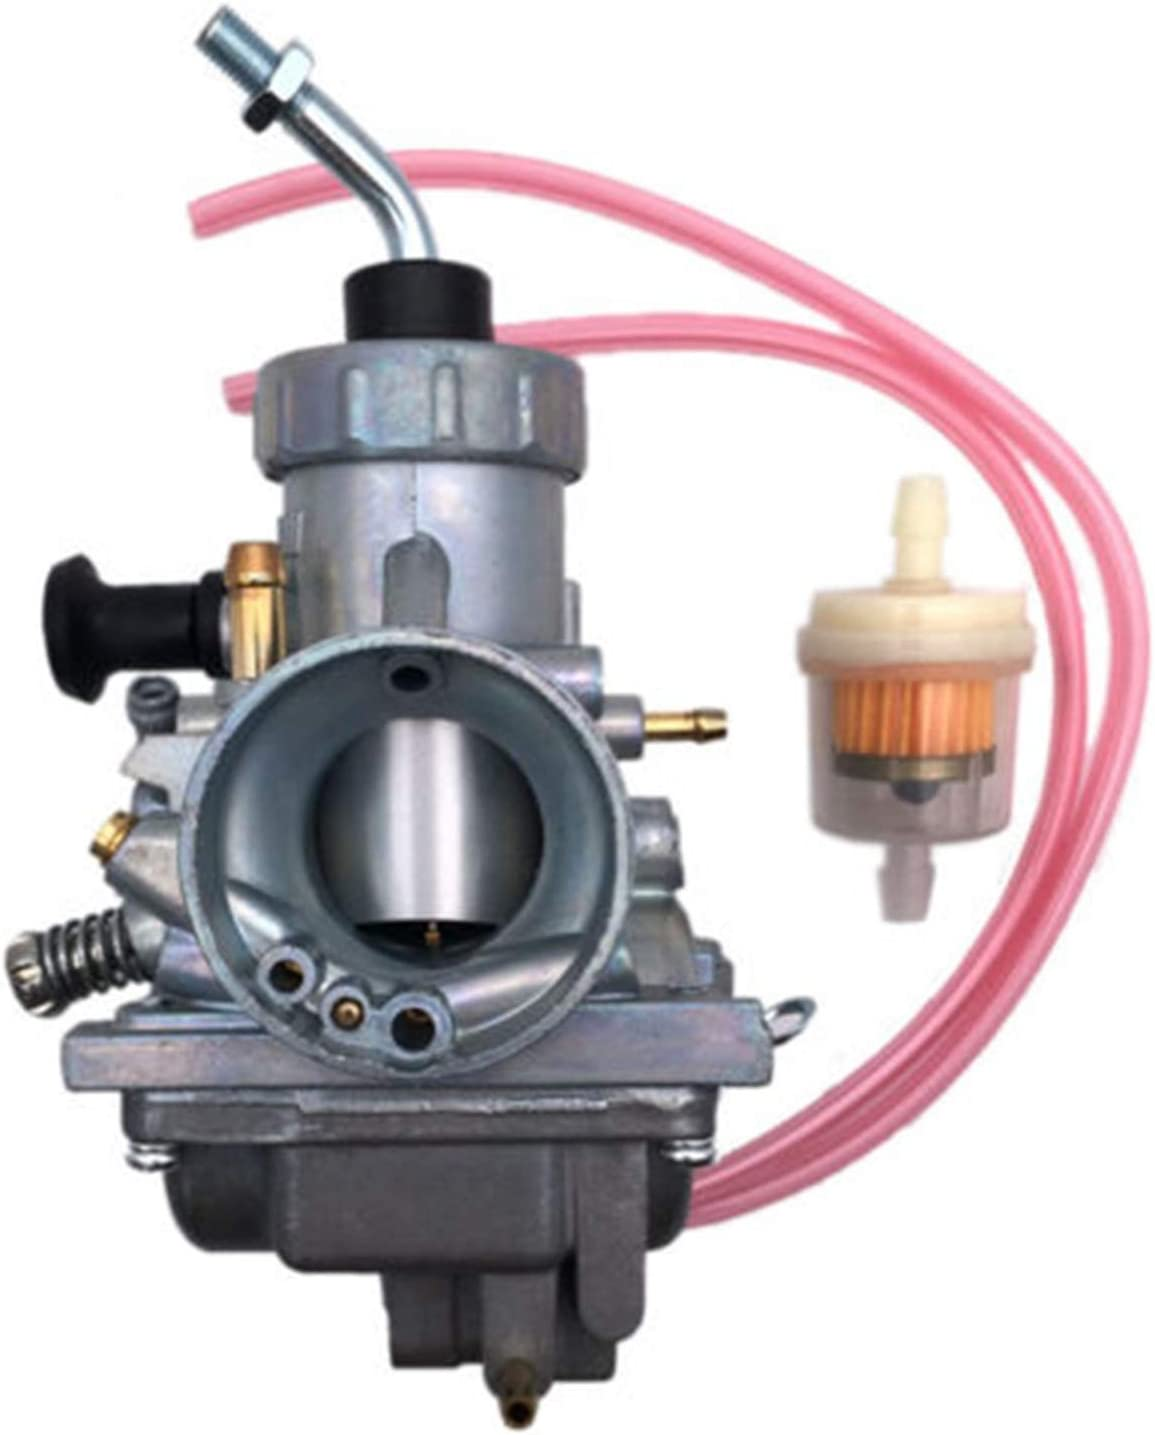 UGUTER Durable Fees free Replacement Carburetor Carb Fits for Quadrunner 2 Rapid rise